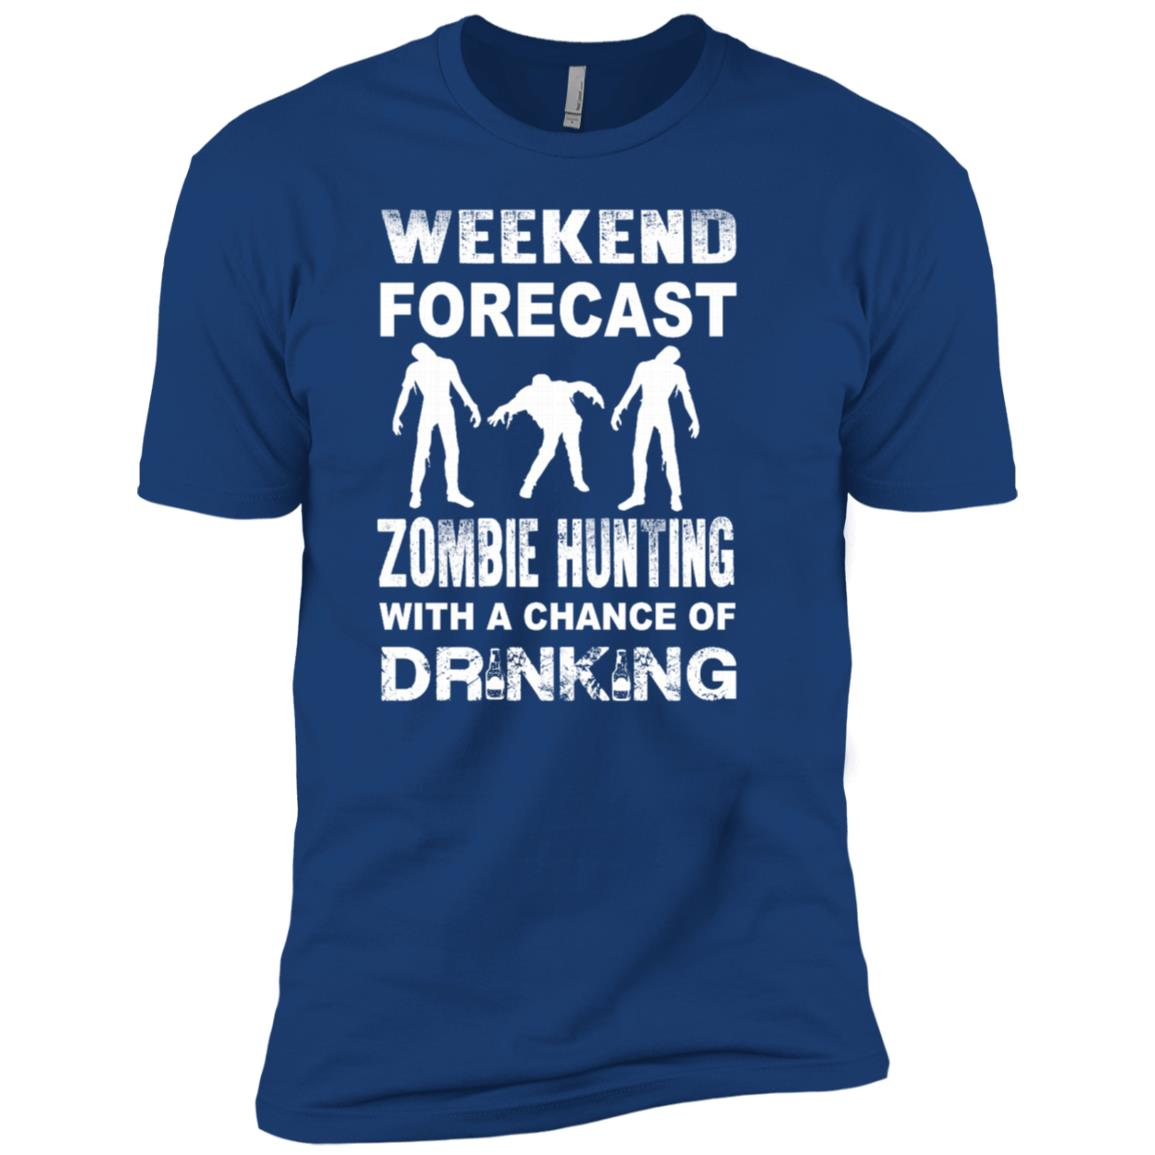 Weekend Zombie Hunting for young Men Short Sleeve T-Shirt